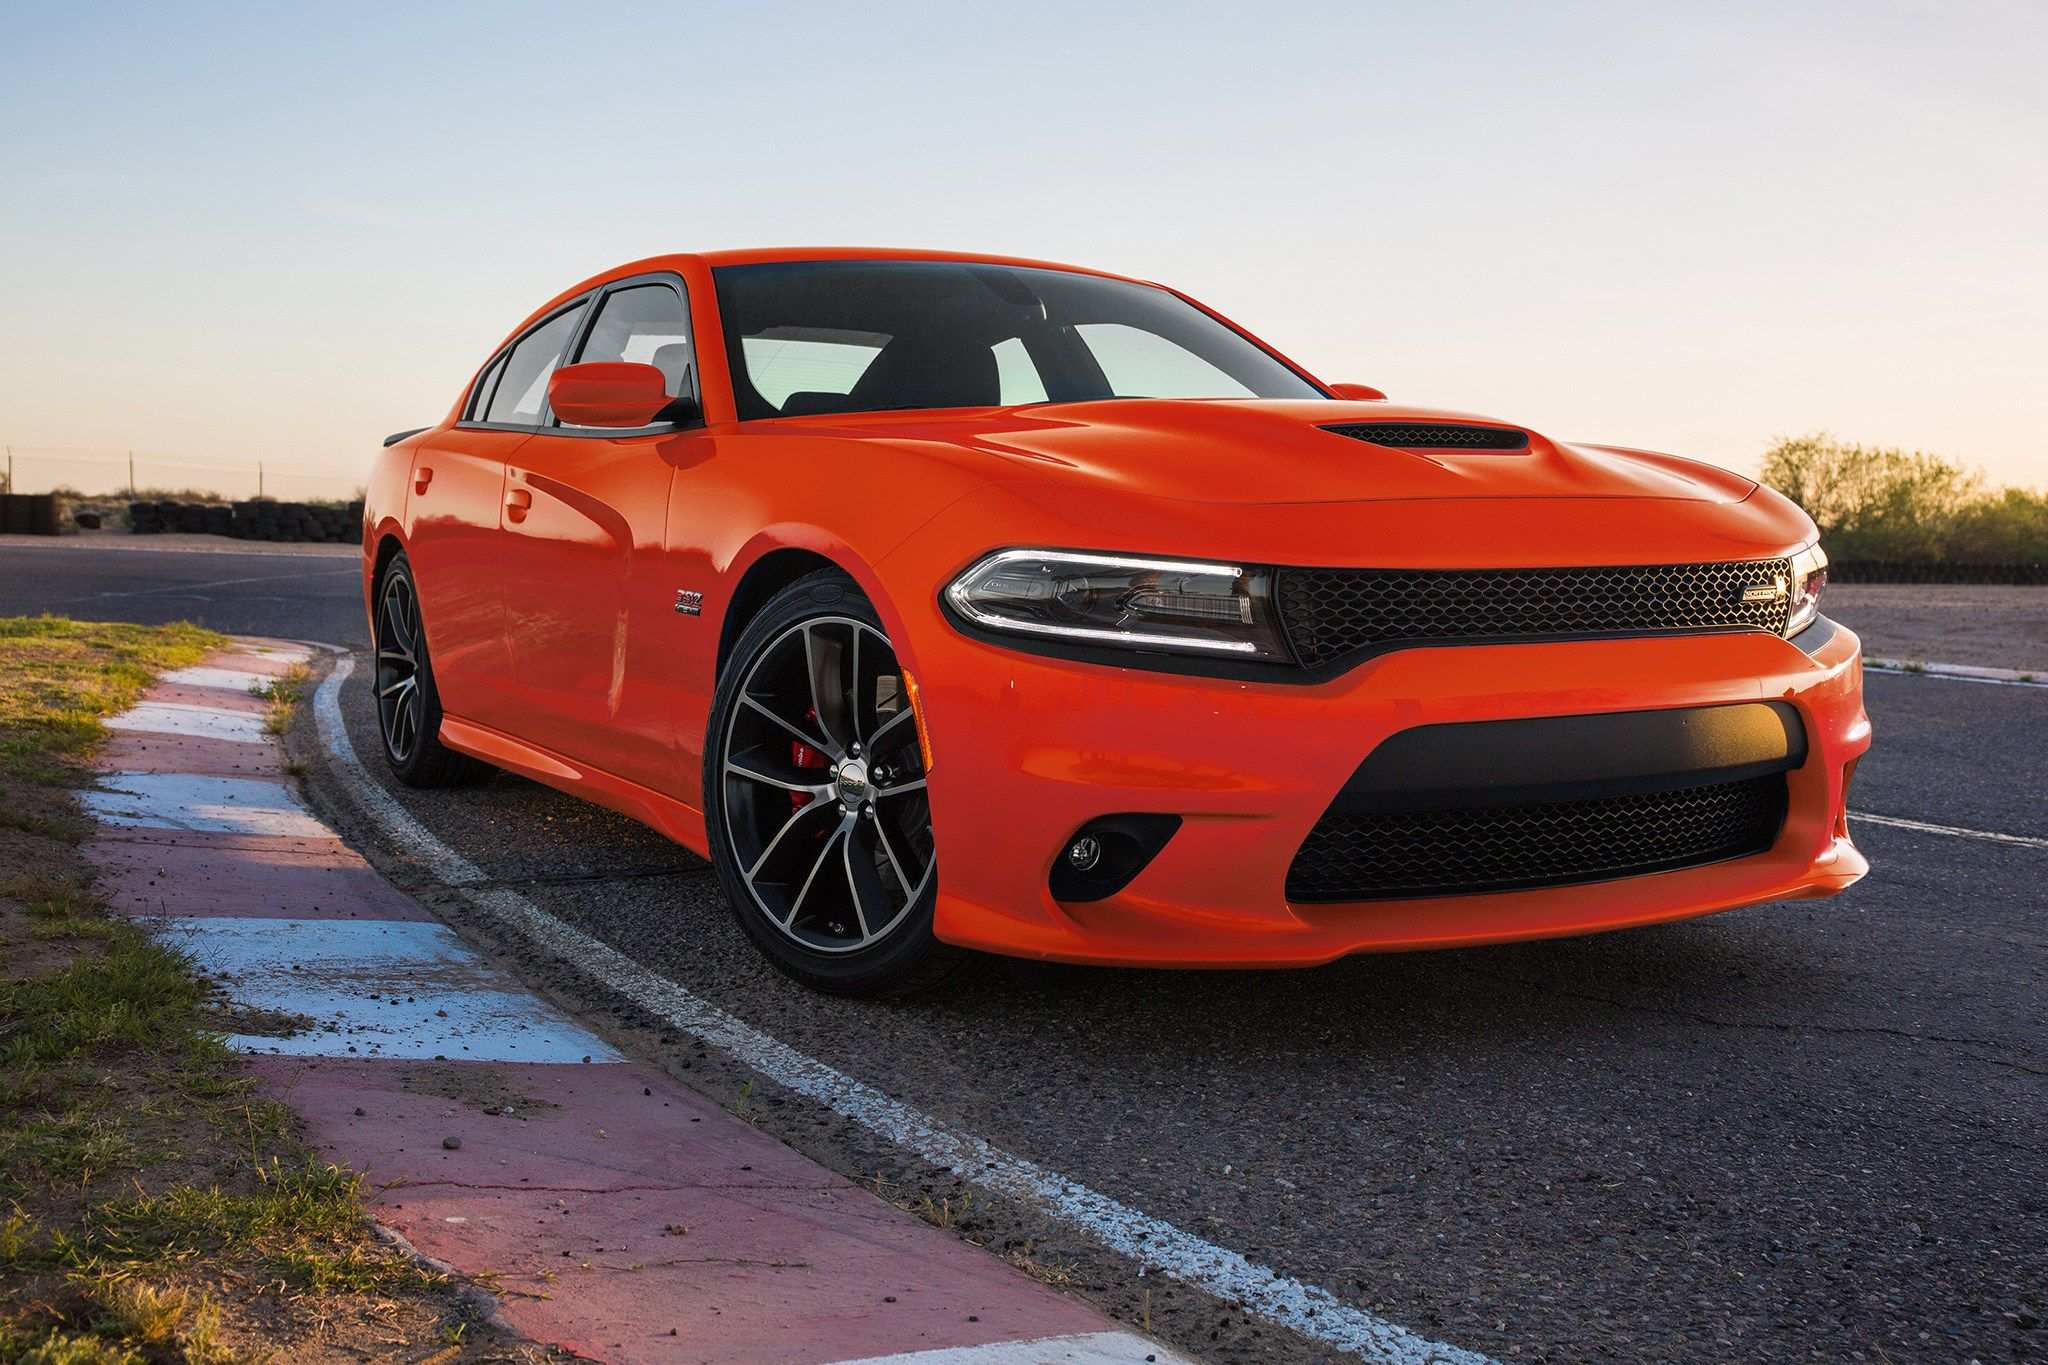 61 Gallery of What Will The 2020 Dodge Charger Look Like Exterior and Interior by What Will The 2020 Dodge Charger Look Like